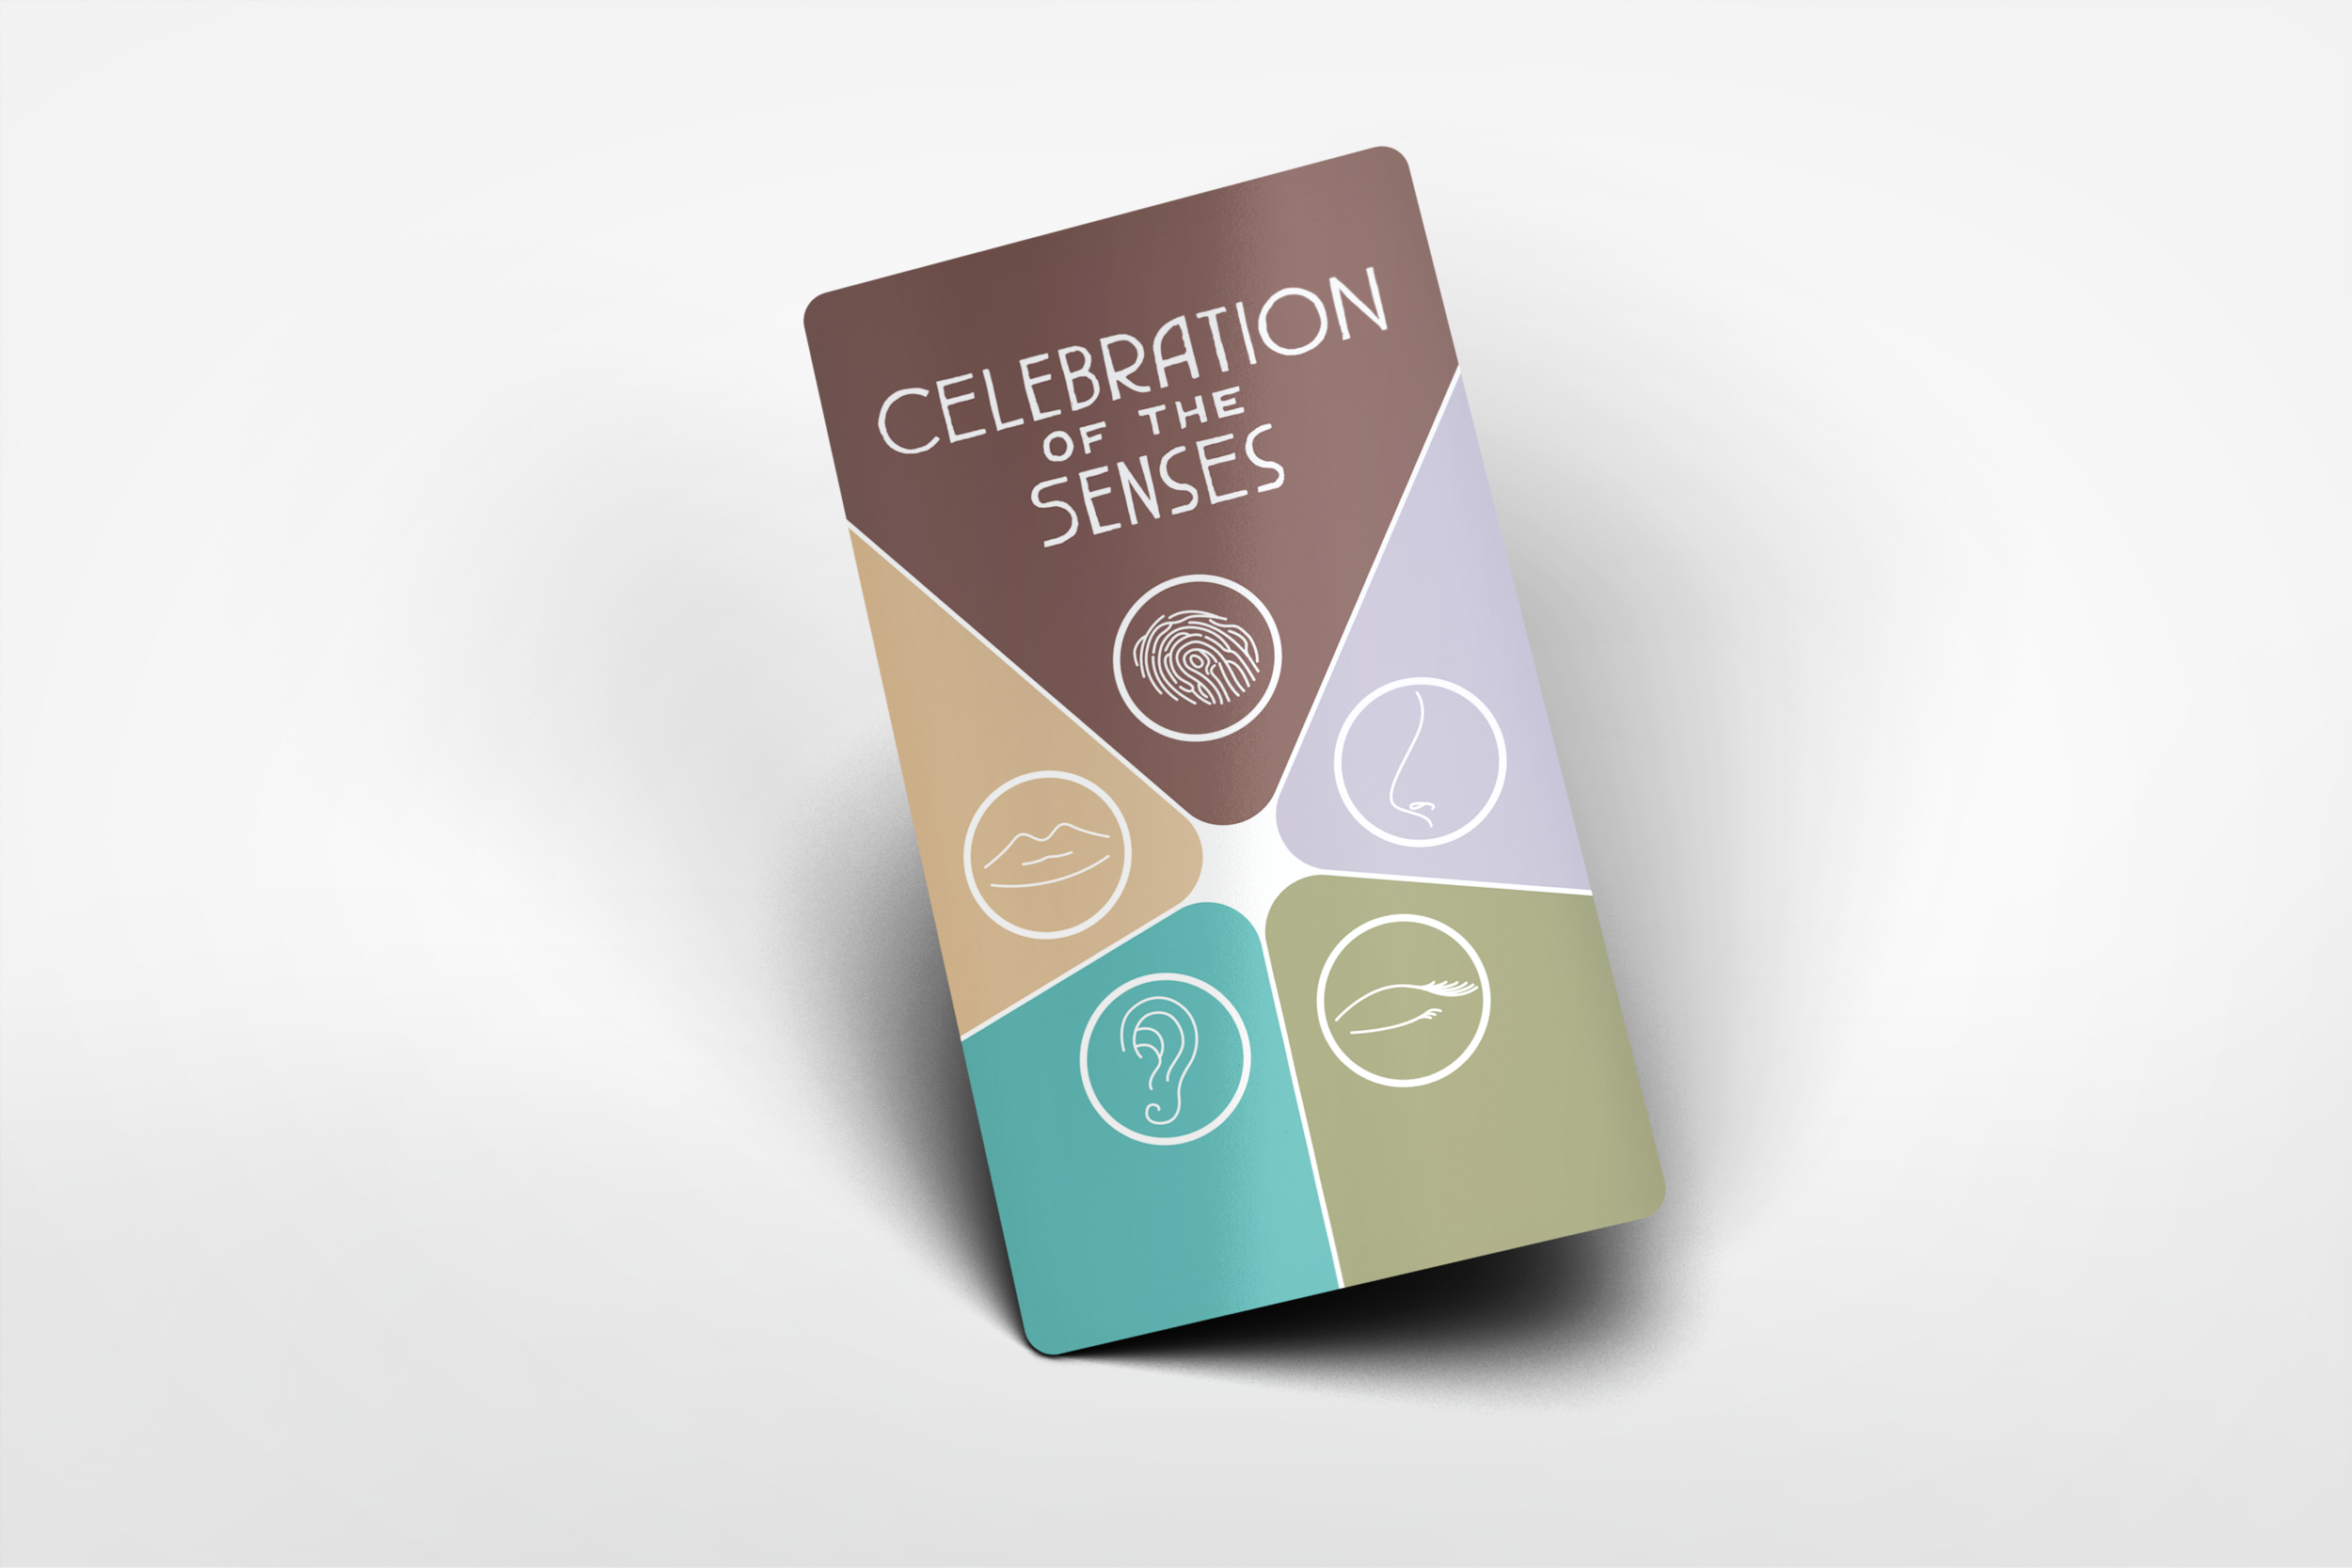 Celebration of the Senses is a colourful card game honouring the diverse artisanal industries found in British Columbia.